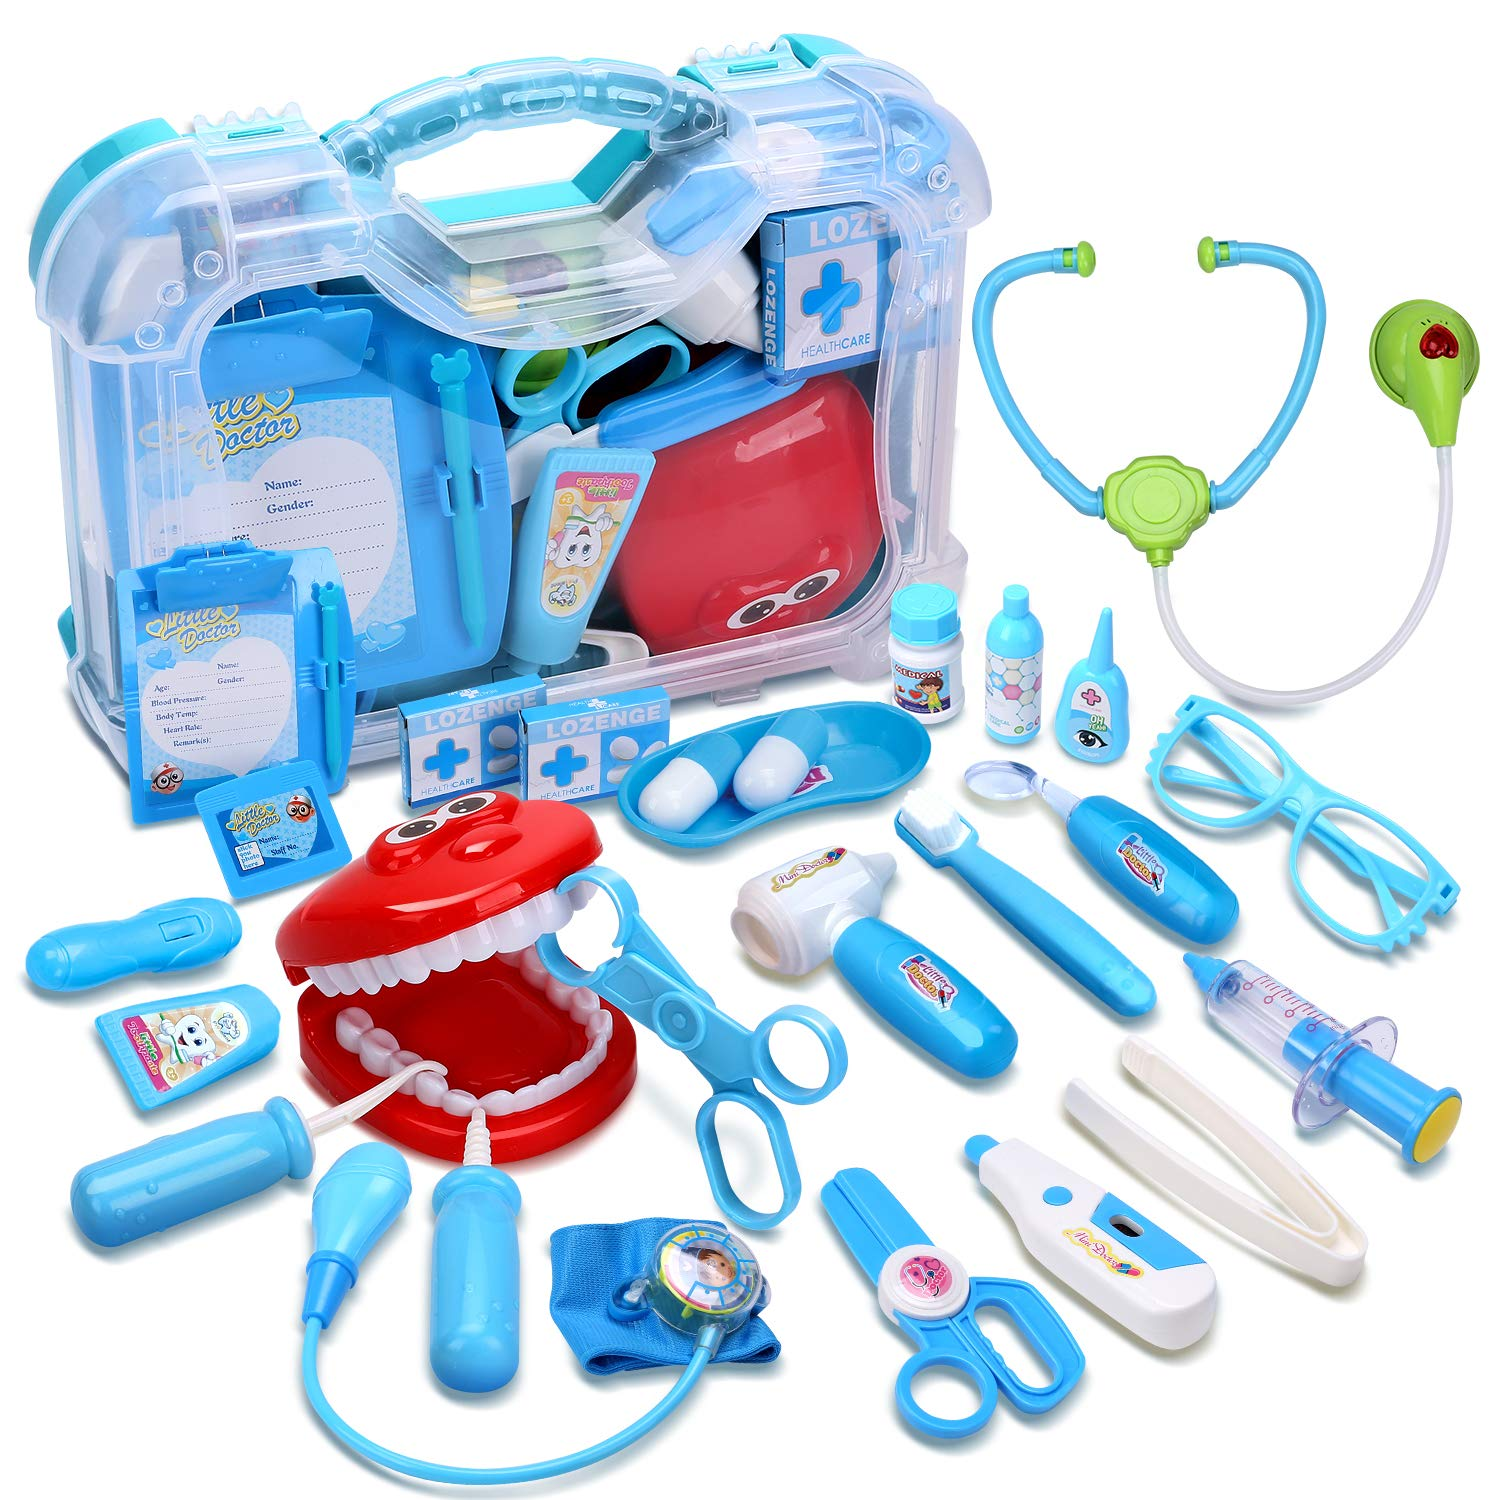 CUTE STONE Toy Medical Kit, 30PCS Kids Pretend Play Dentist Doctor Kit with Electronic Stethoscope Toy and Carrying Case, Role Play Educational Toy Doctor Playset for Toddler Boys Girls by CUTE STONE